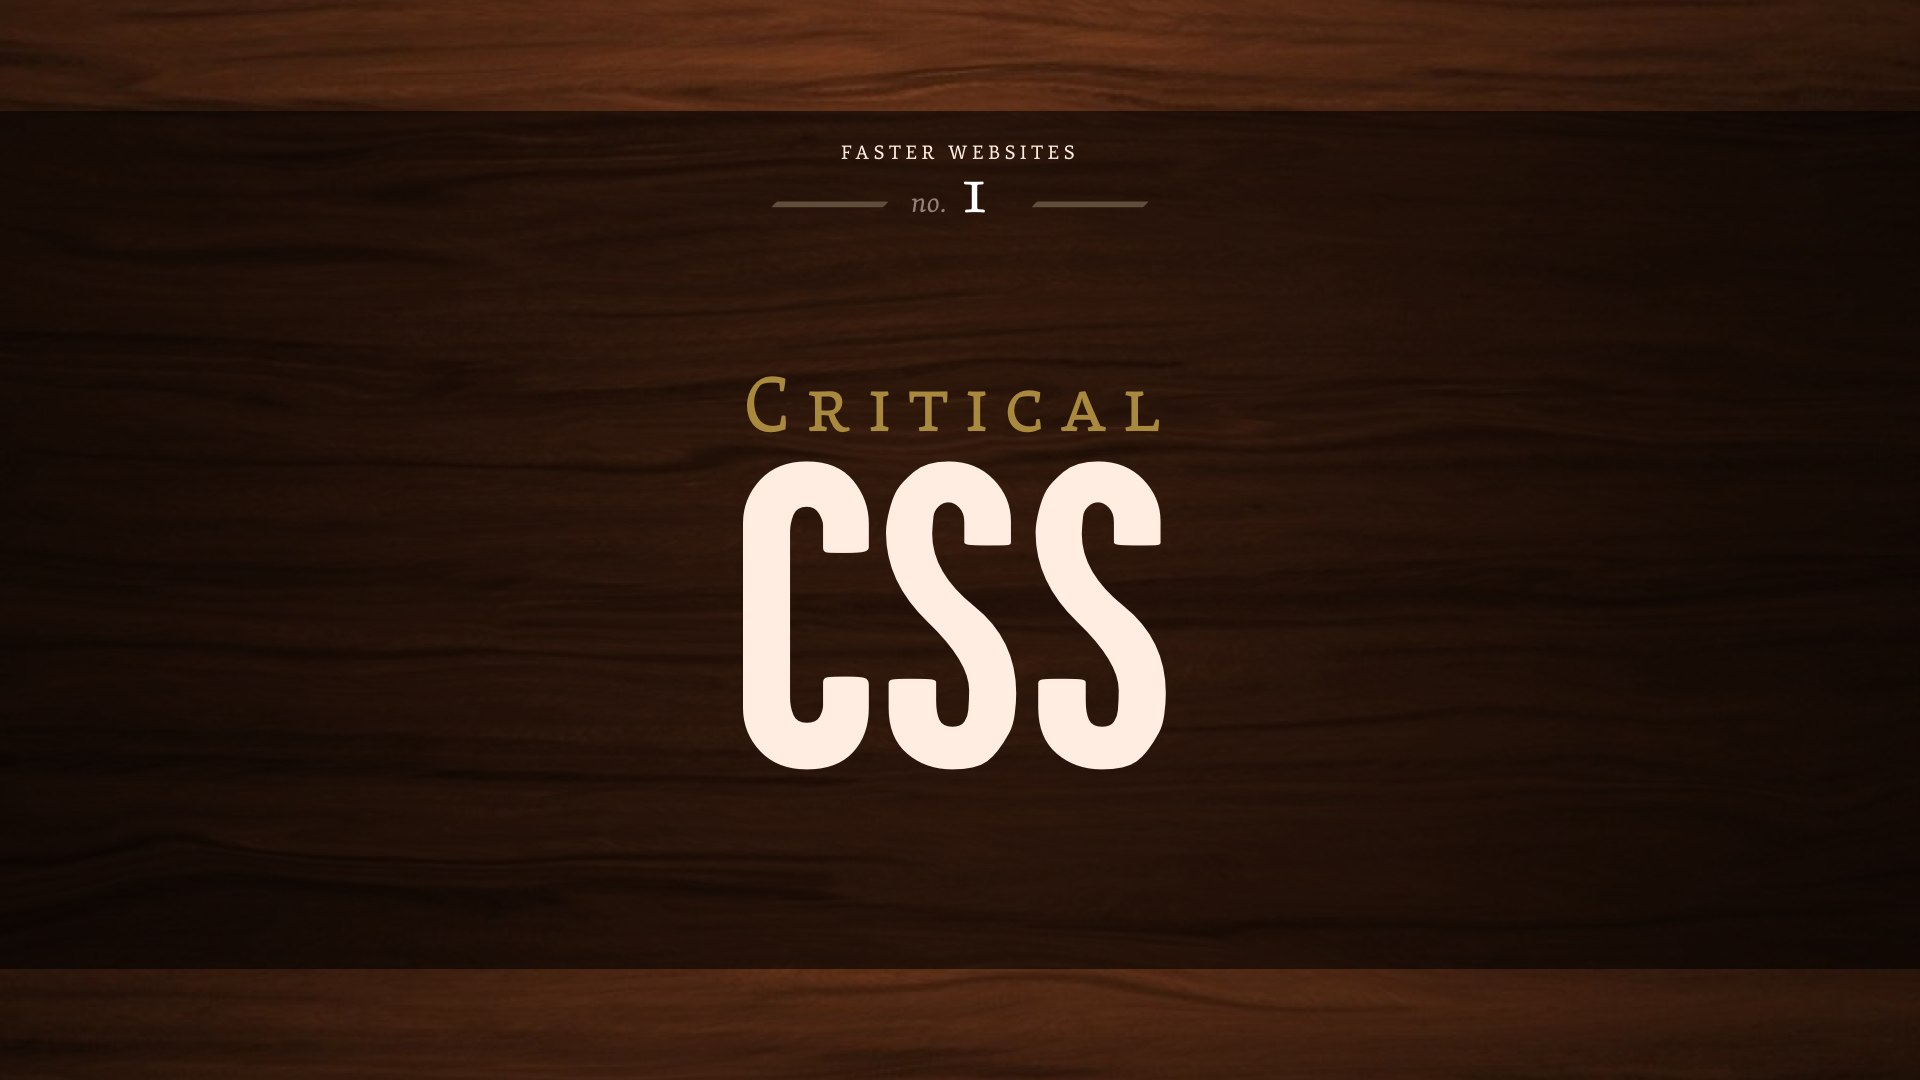 Faster Websites: CriticalCSS